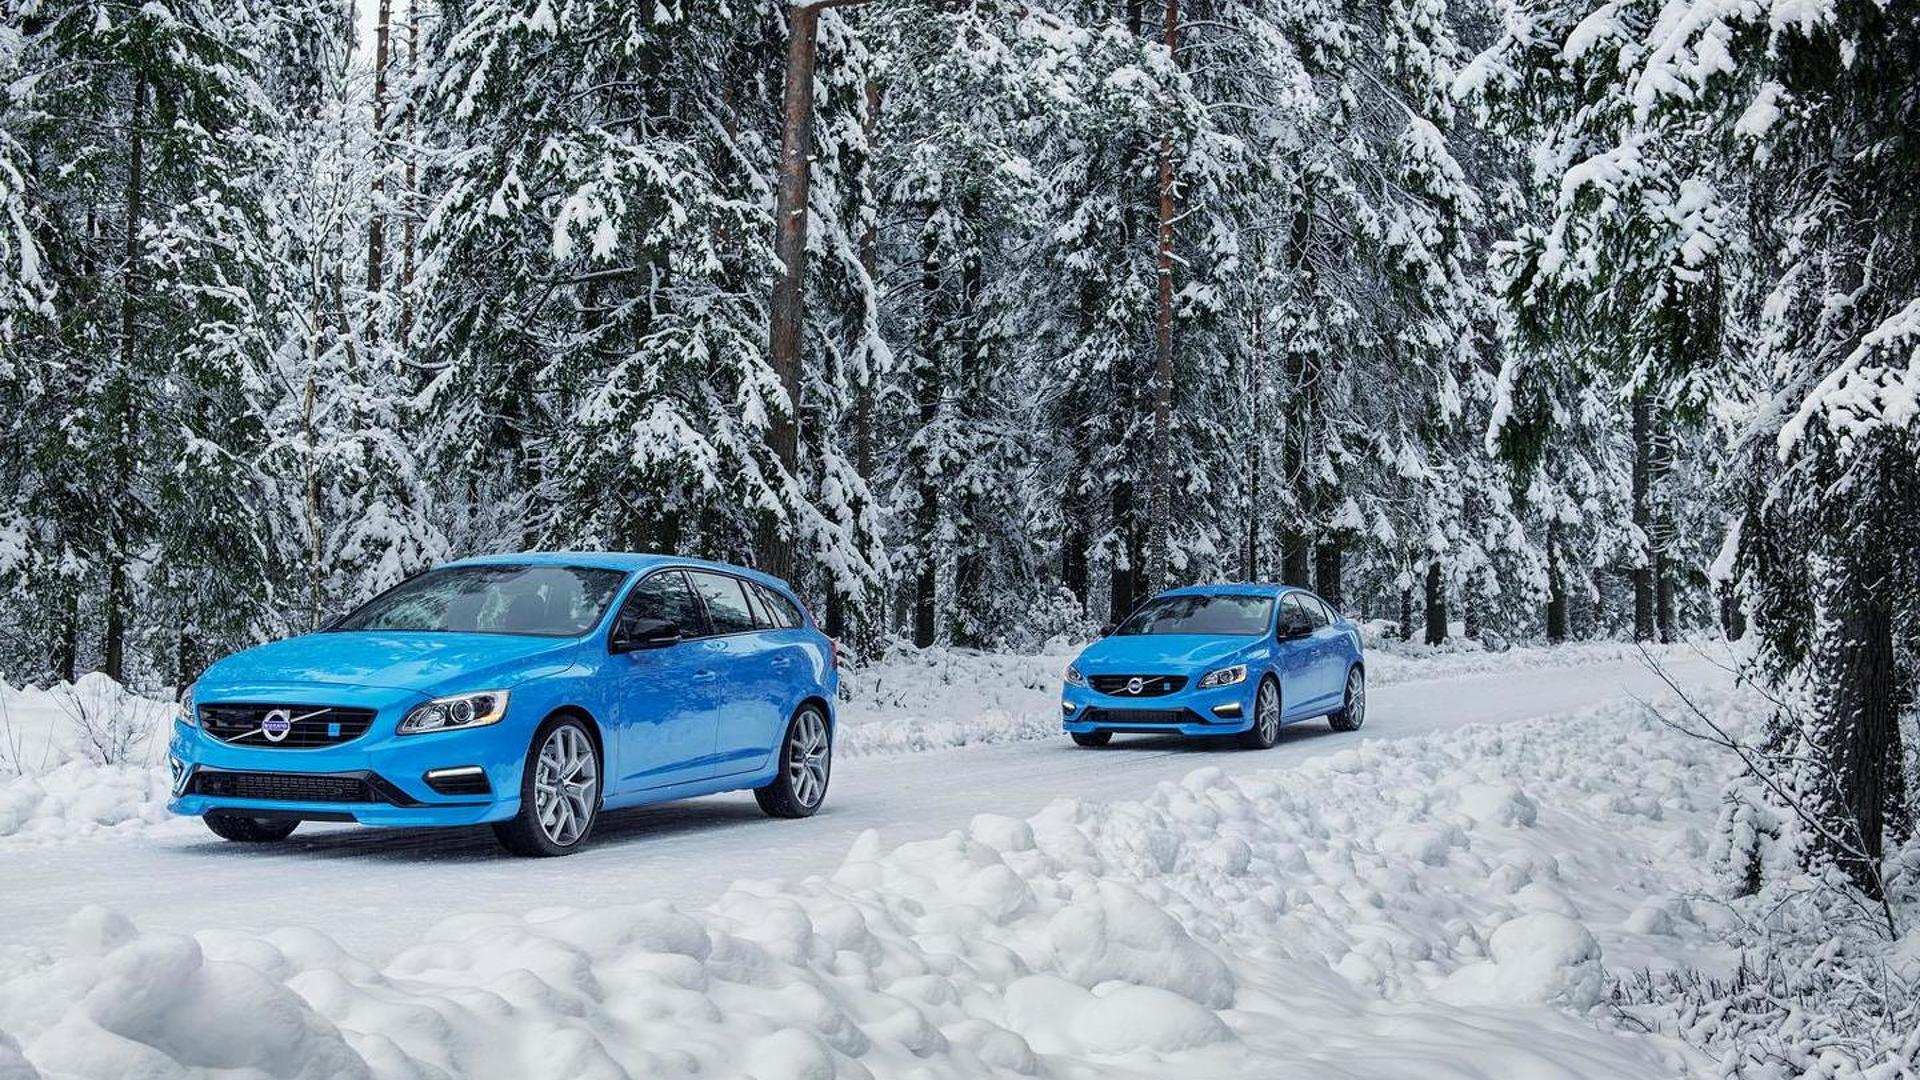 Volvo's Polestar could use 450-hp 4-cylinder engine